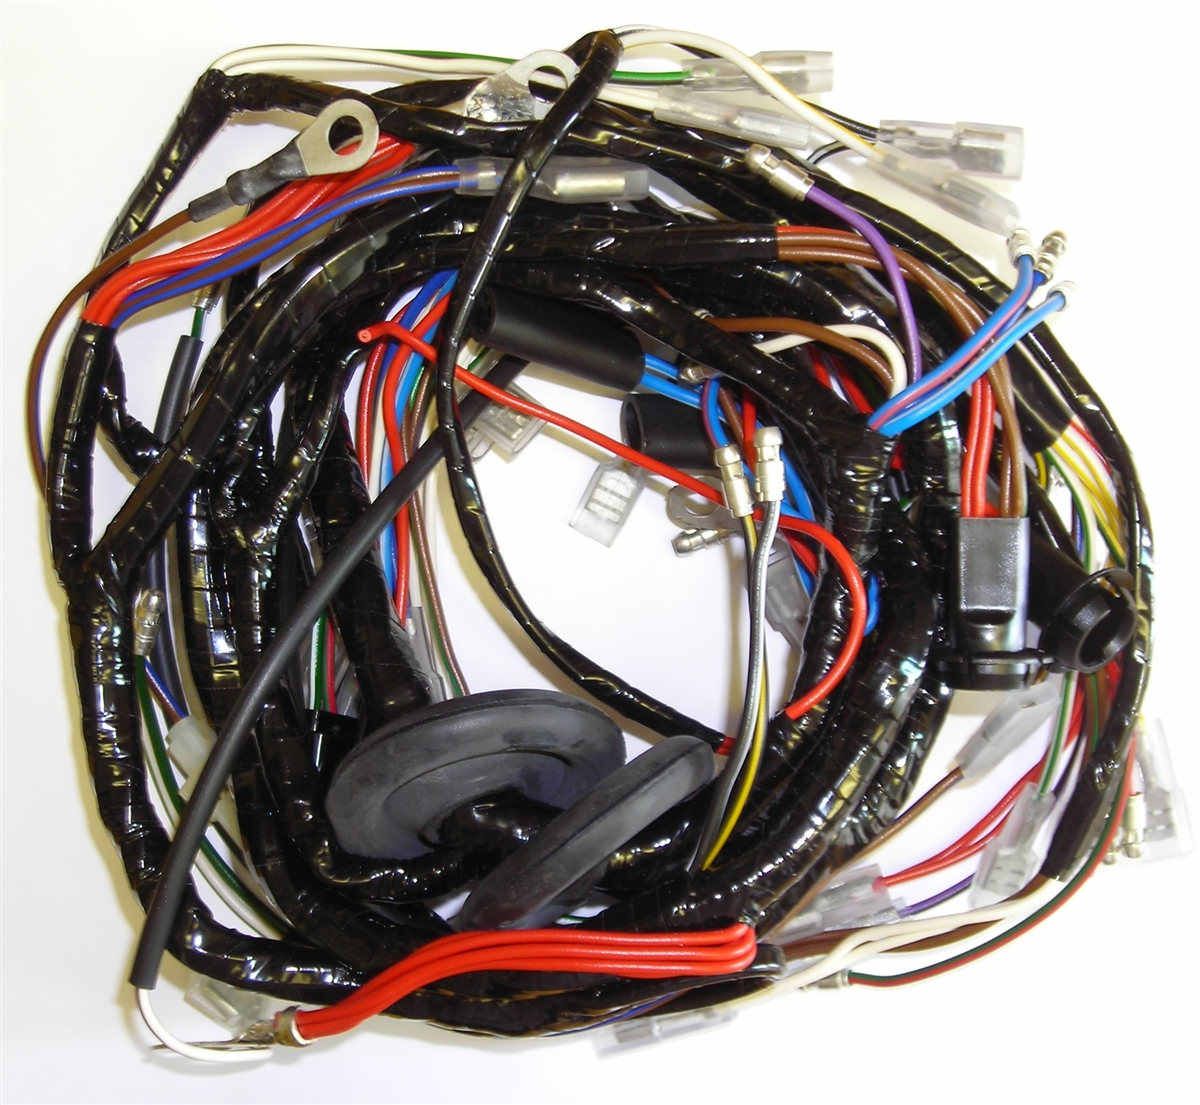 MC71PP 2?1374666211 motorcycle wiring harness motorcycle wiring harness at edmiracle.co